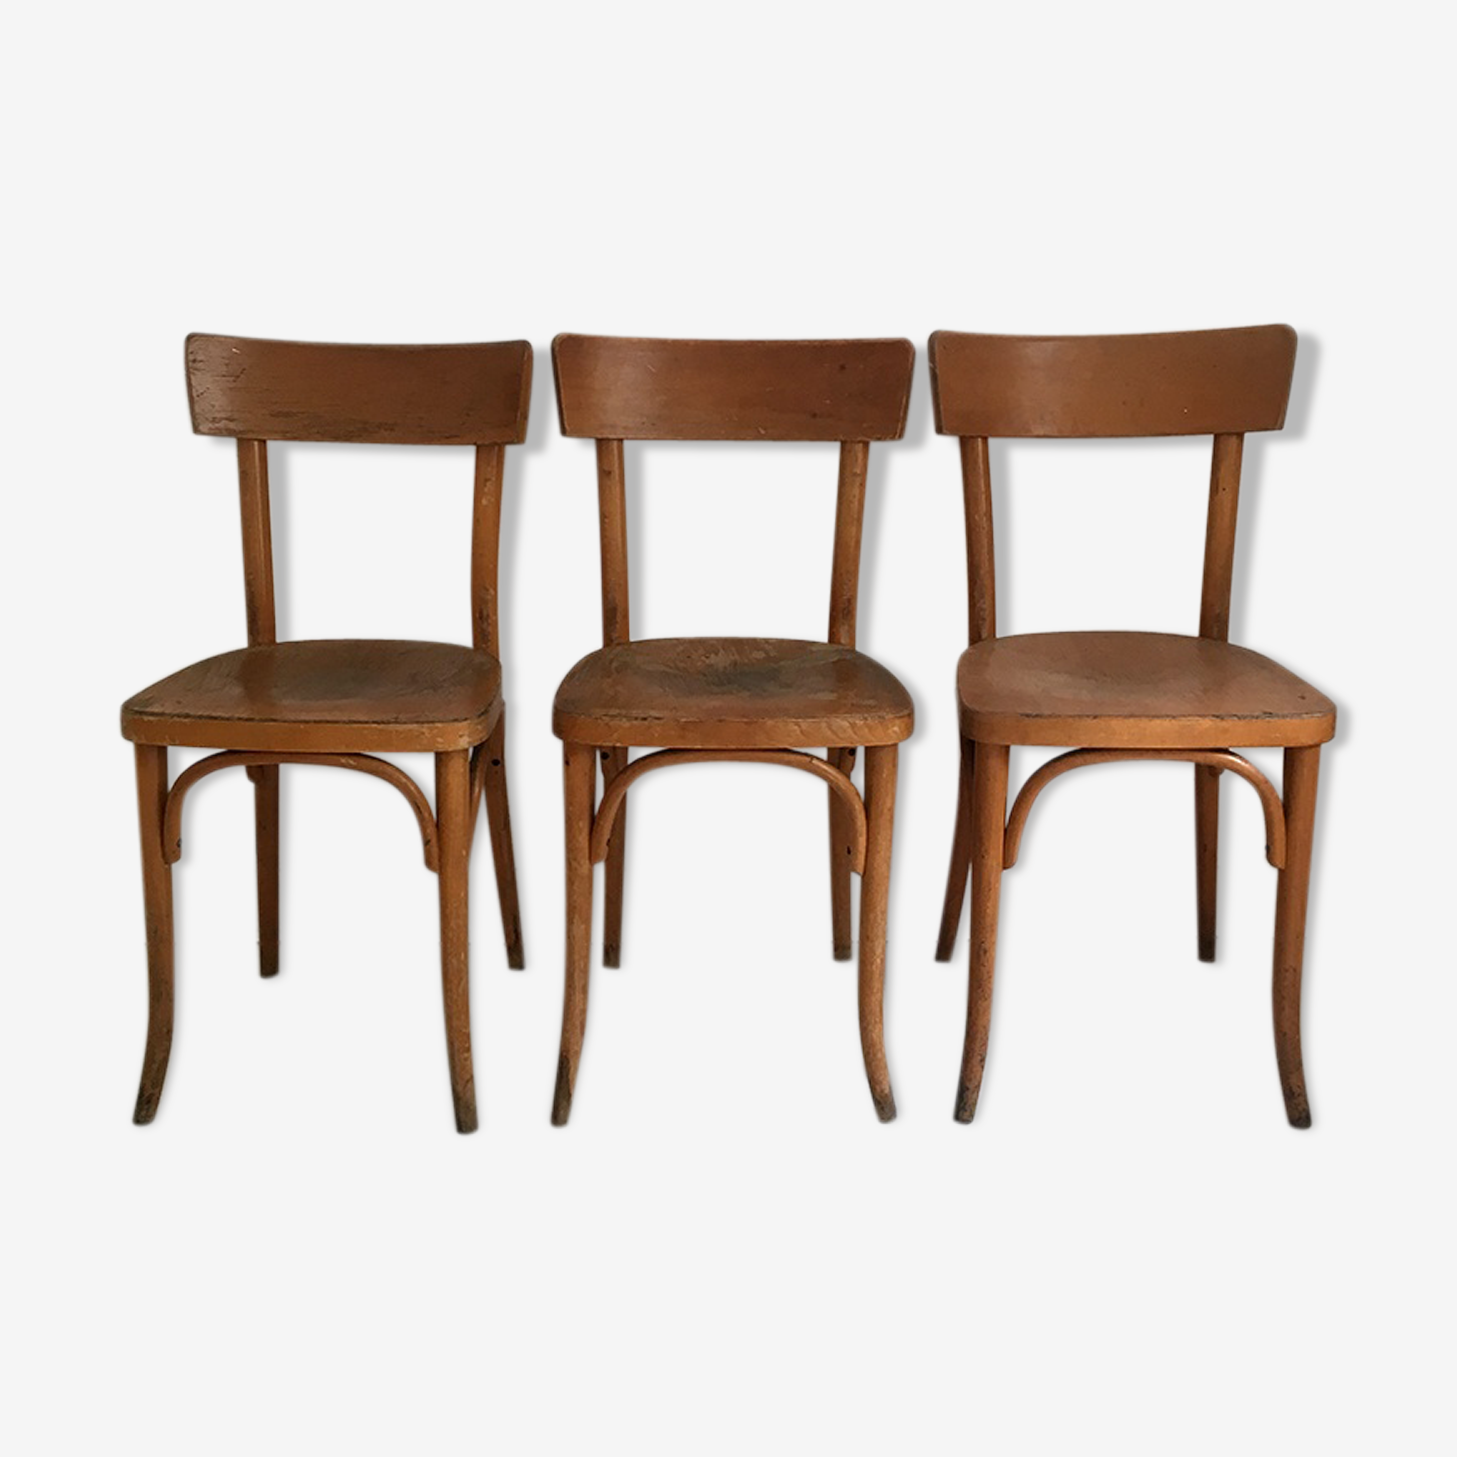 Set of 3 chairs Thonet vintage 60